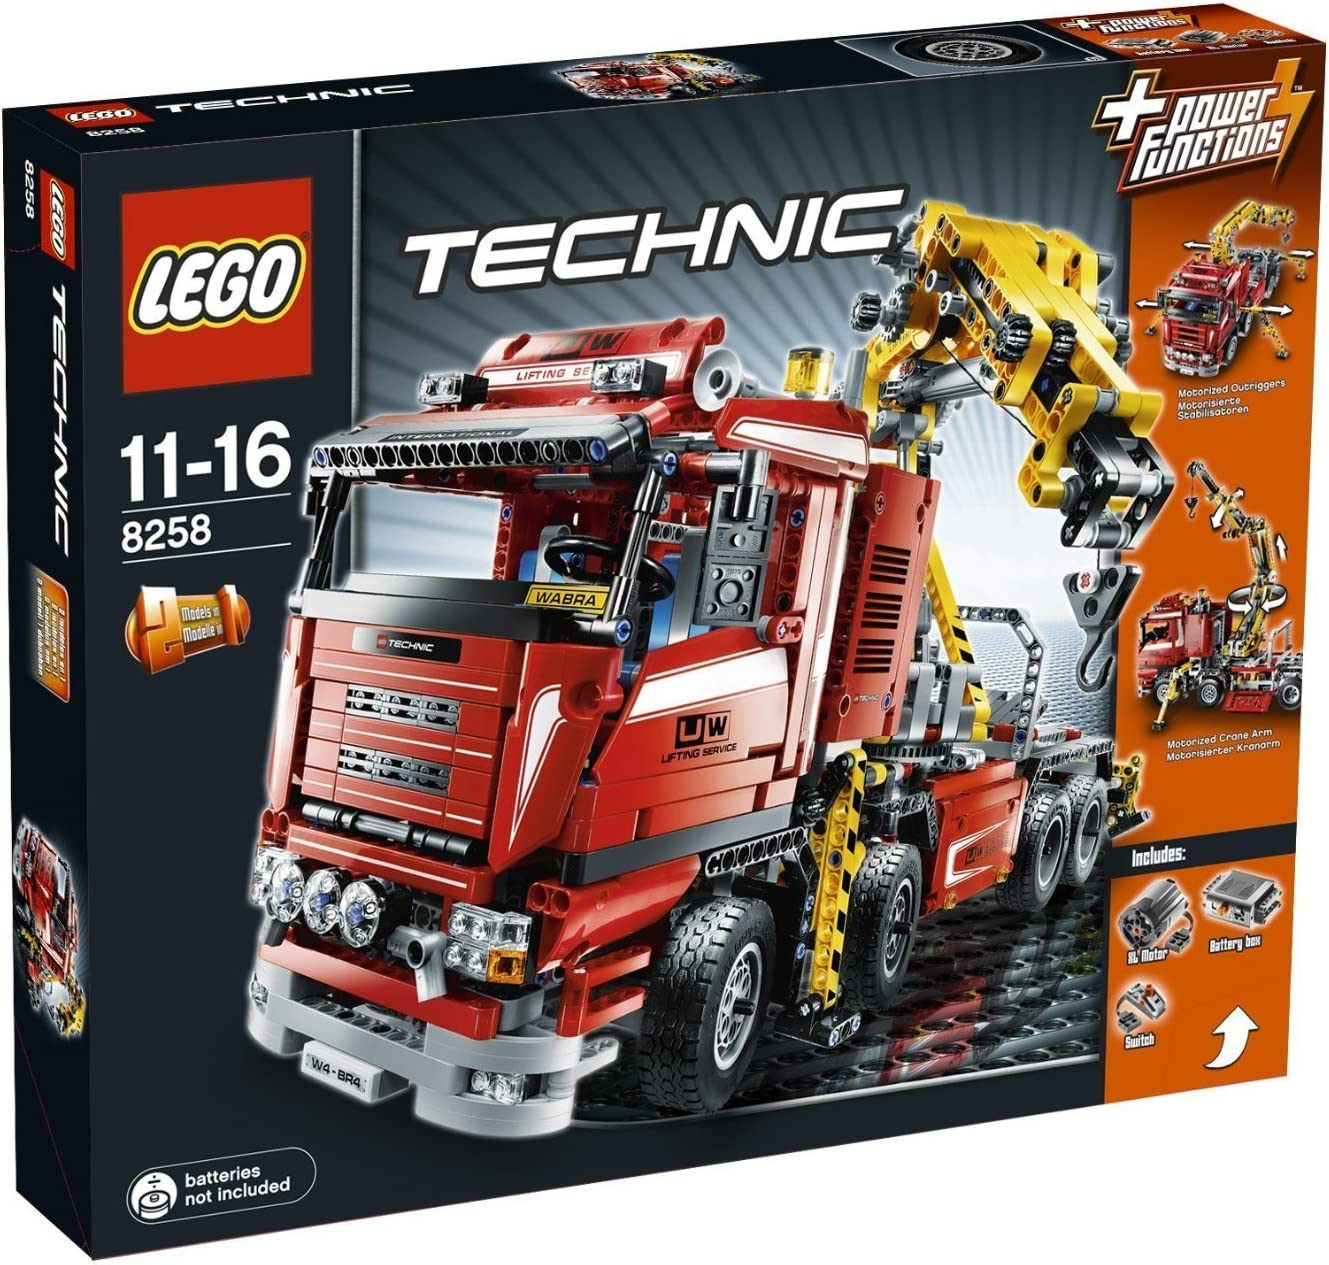 Top 7 Best LEGO Crane Sets Reviews in 2020 6